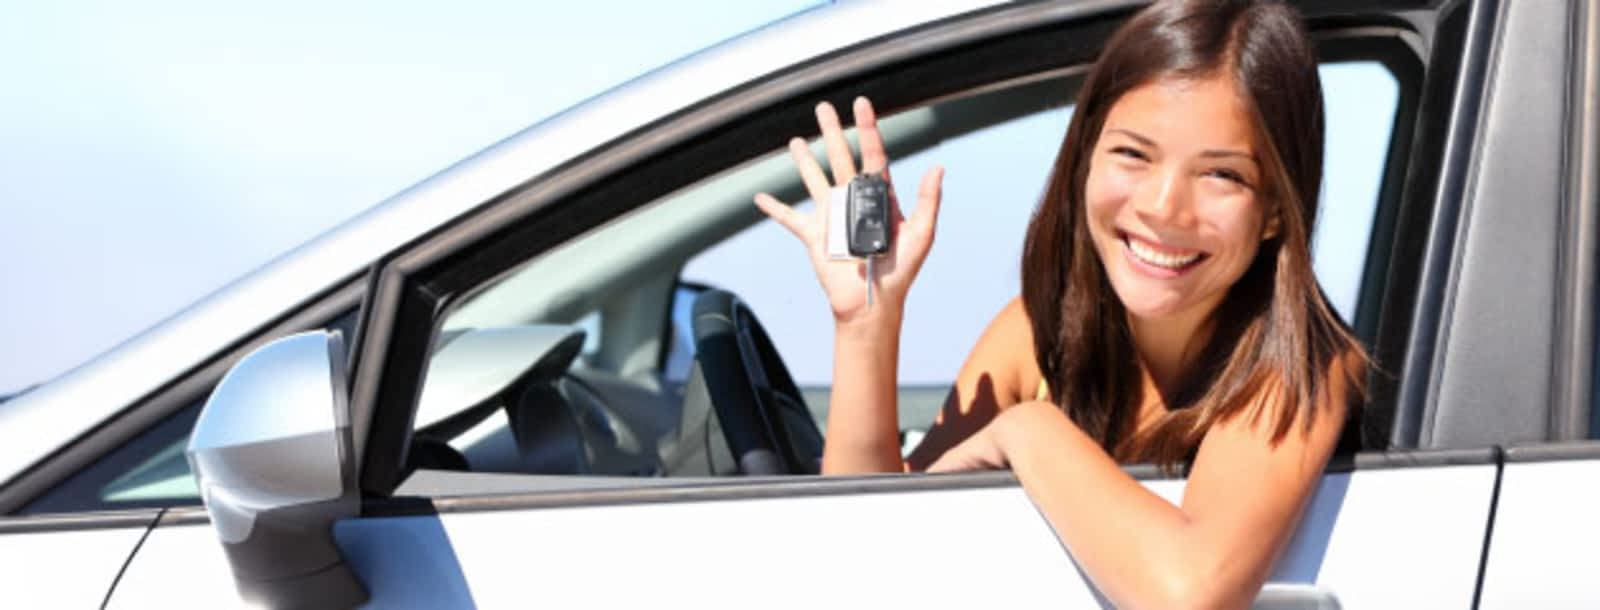 Image result for full license driver passers image